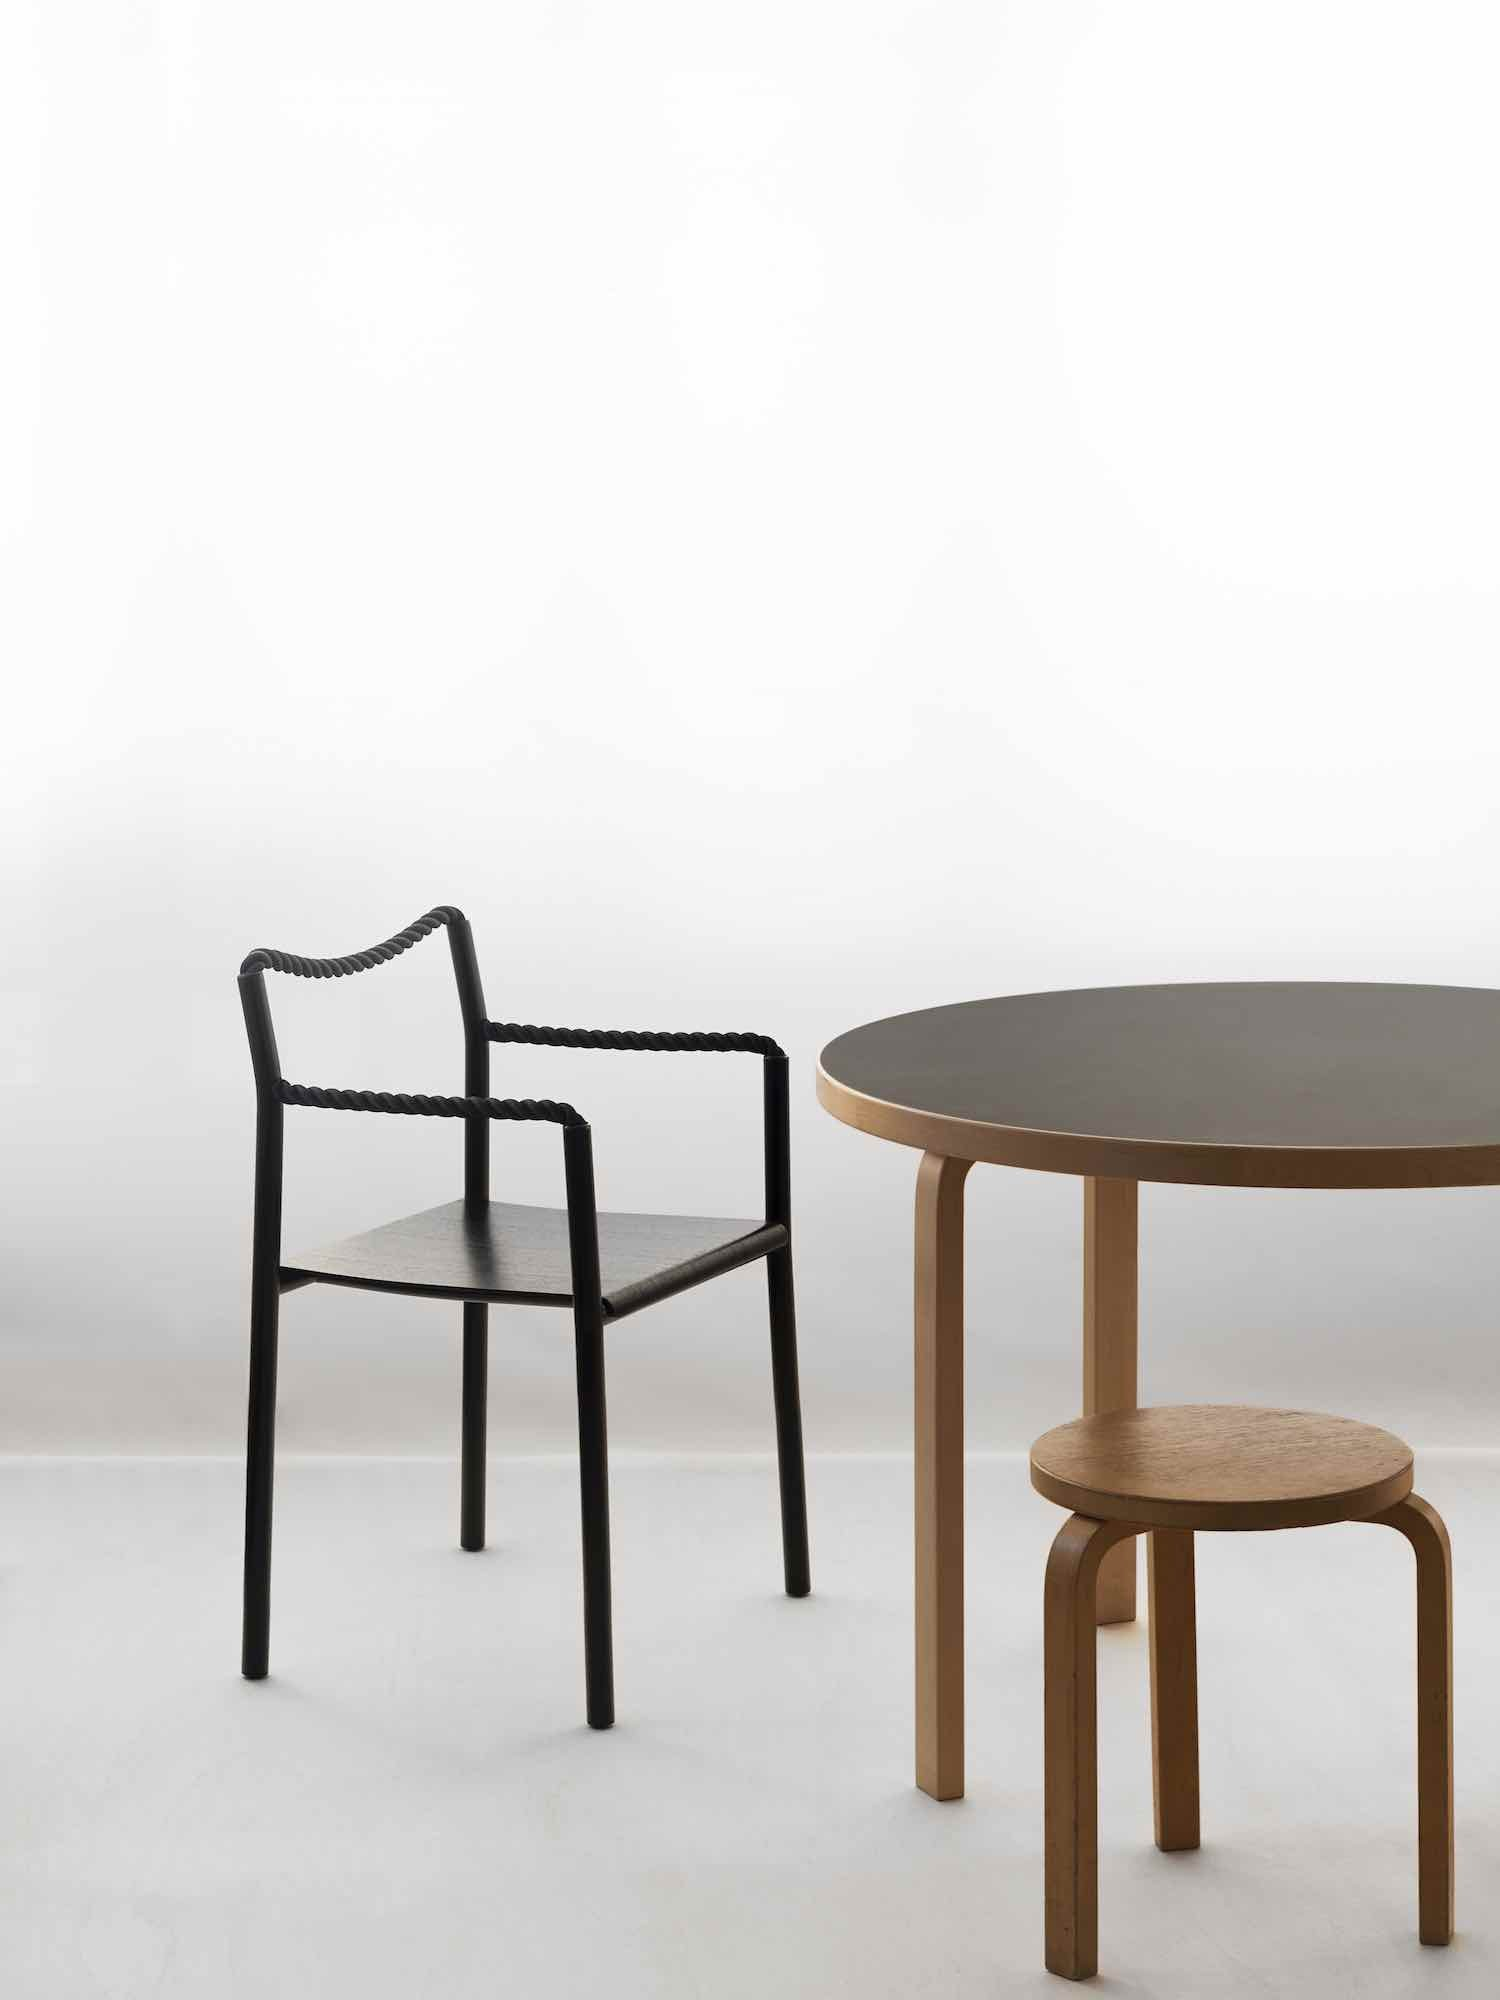 ROPE CHAIR by Ronan & Erwan Bouroullec for Artek - Photo by Mikko Ryhanen.